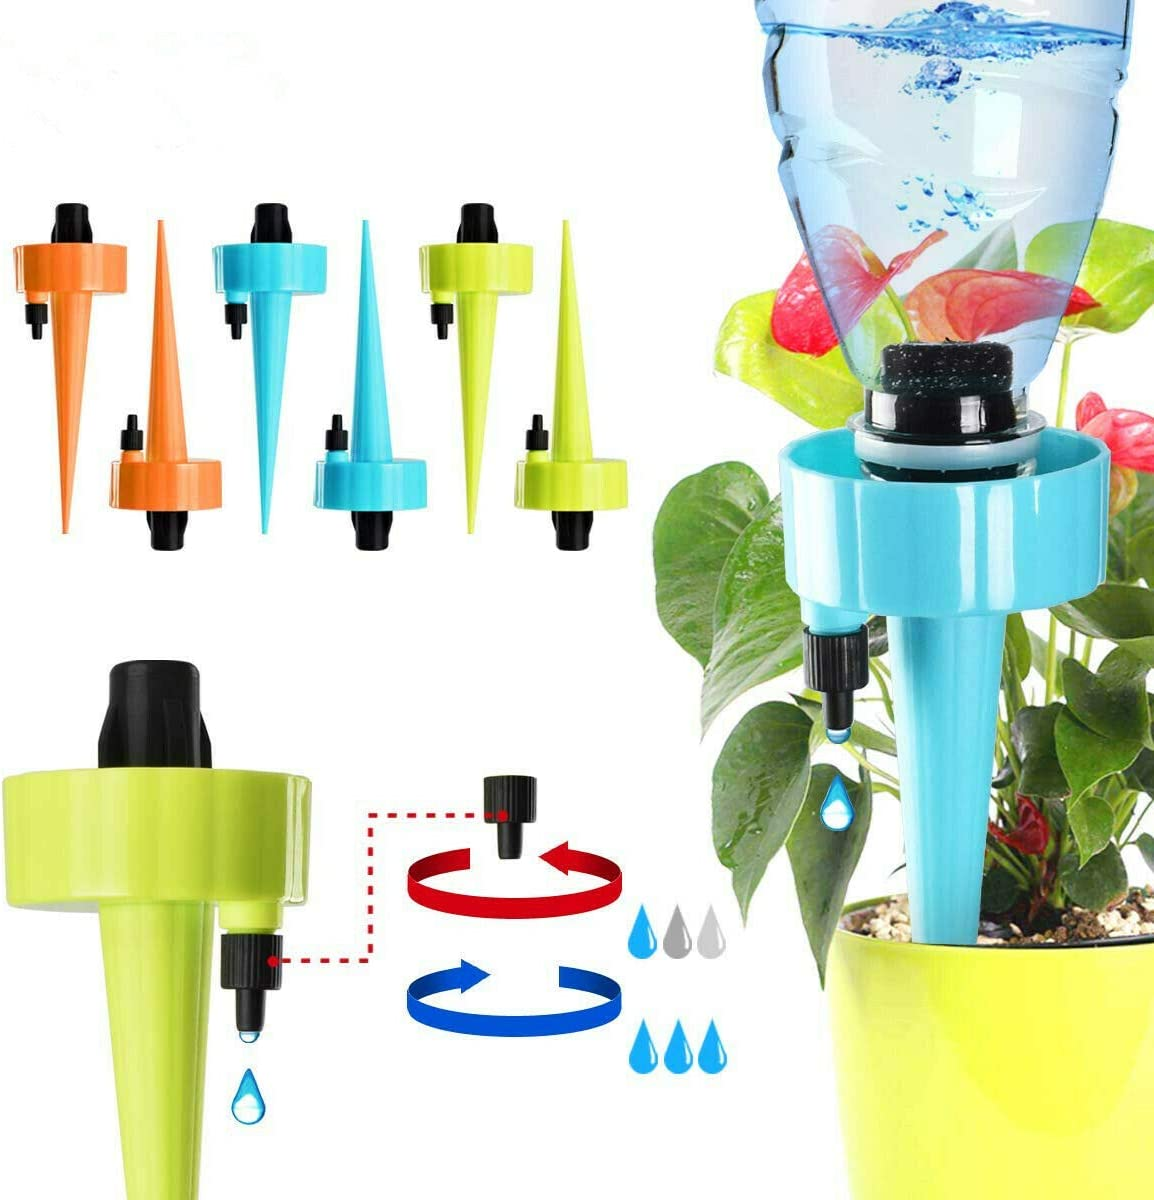 AiBeiS Adjustable Self Watering Spikes. Automatic Vacation Drip Irrigation Watering Devices,Care Your Indoor & Outdoor Home Office Plants-6 Pack